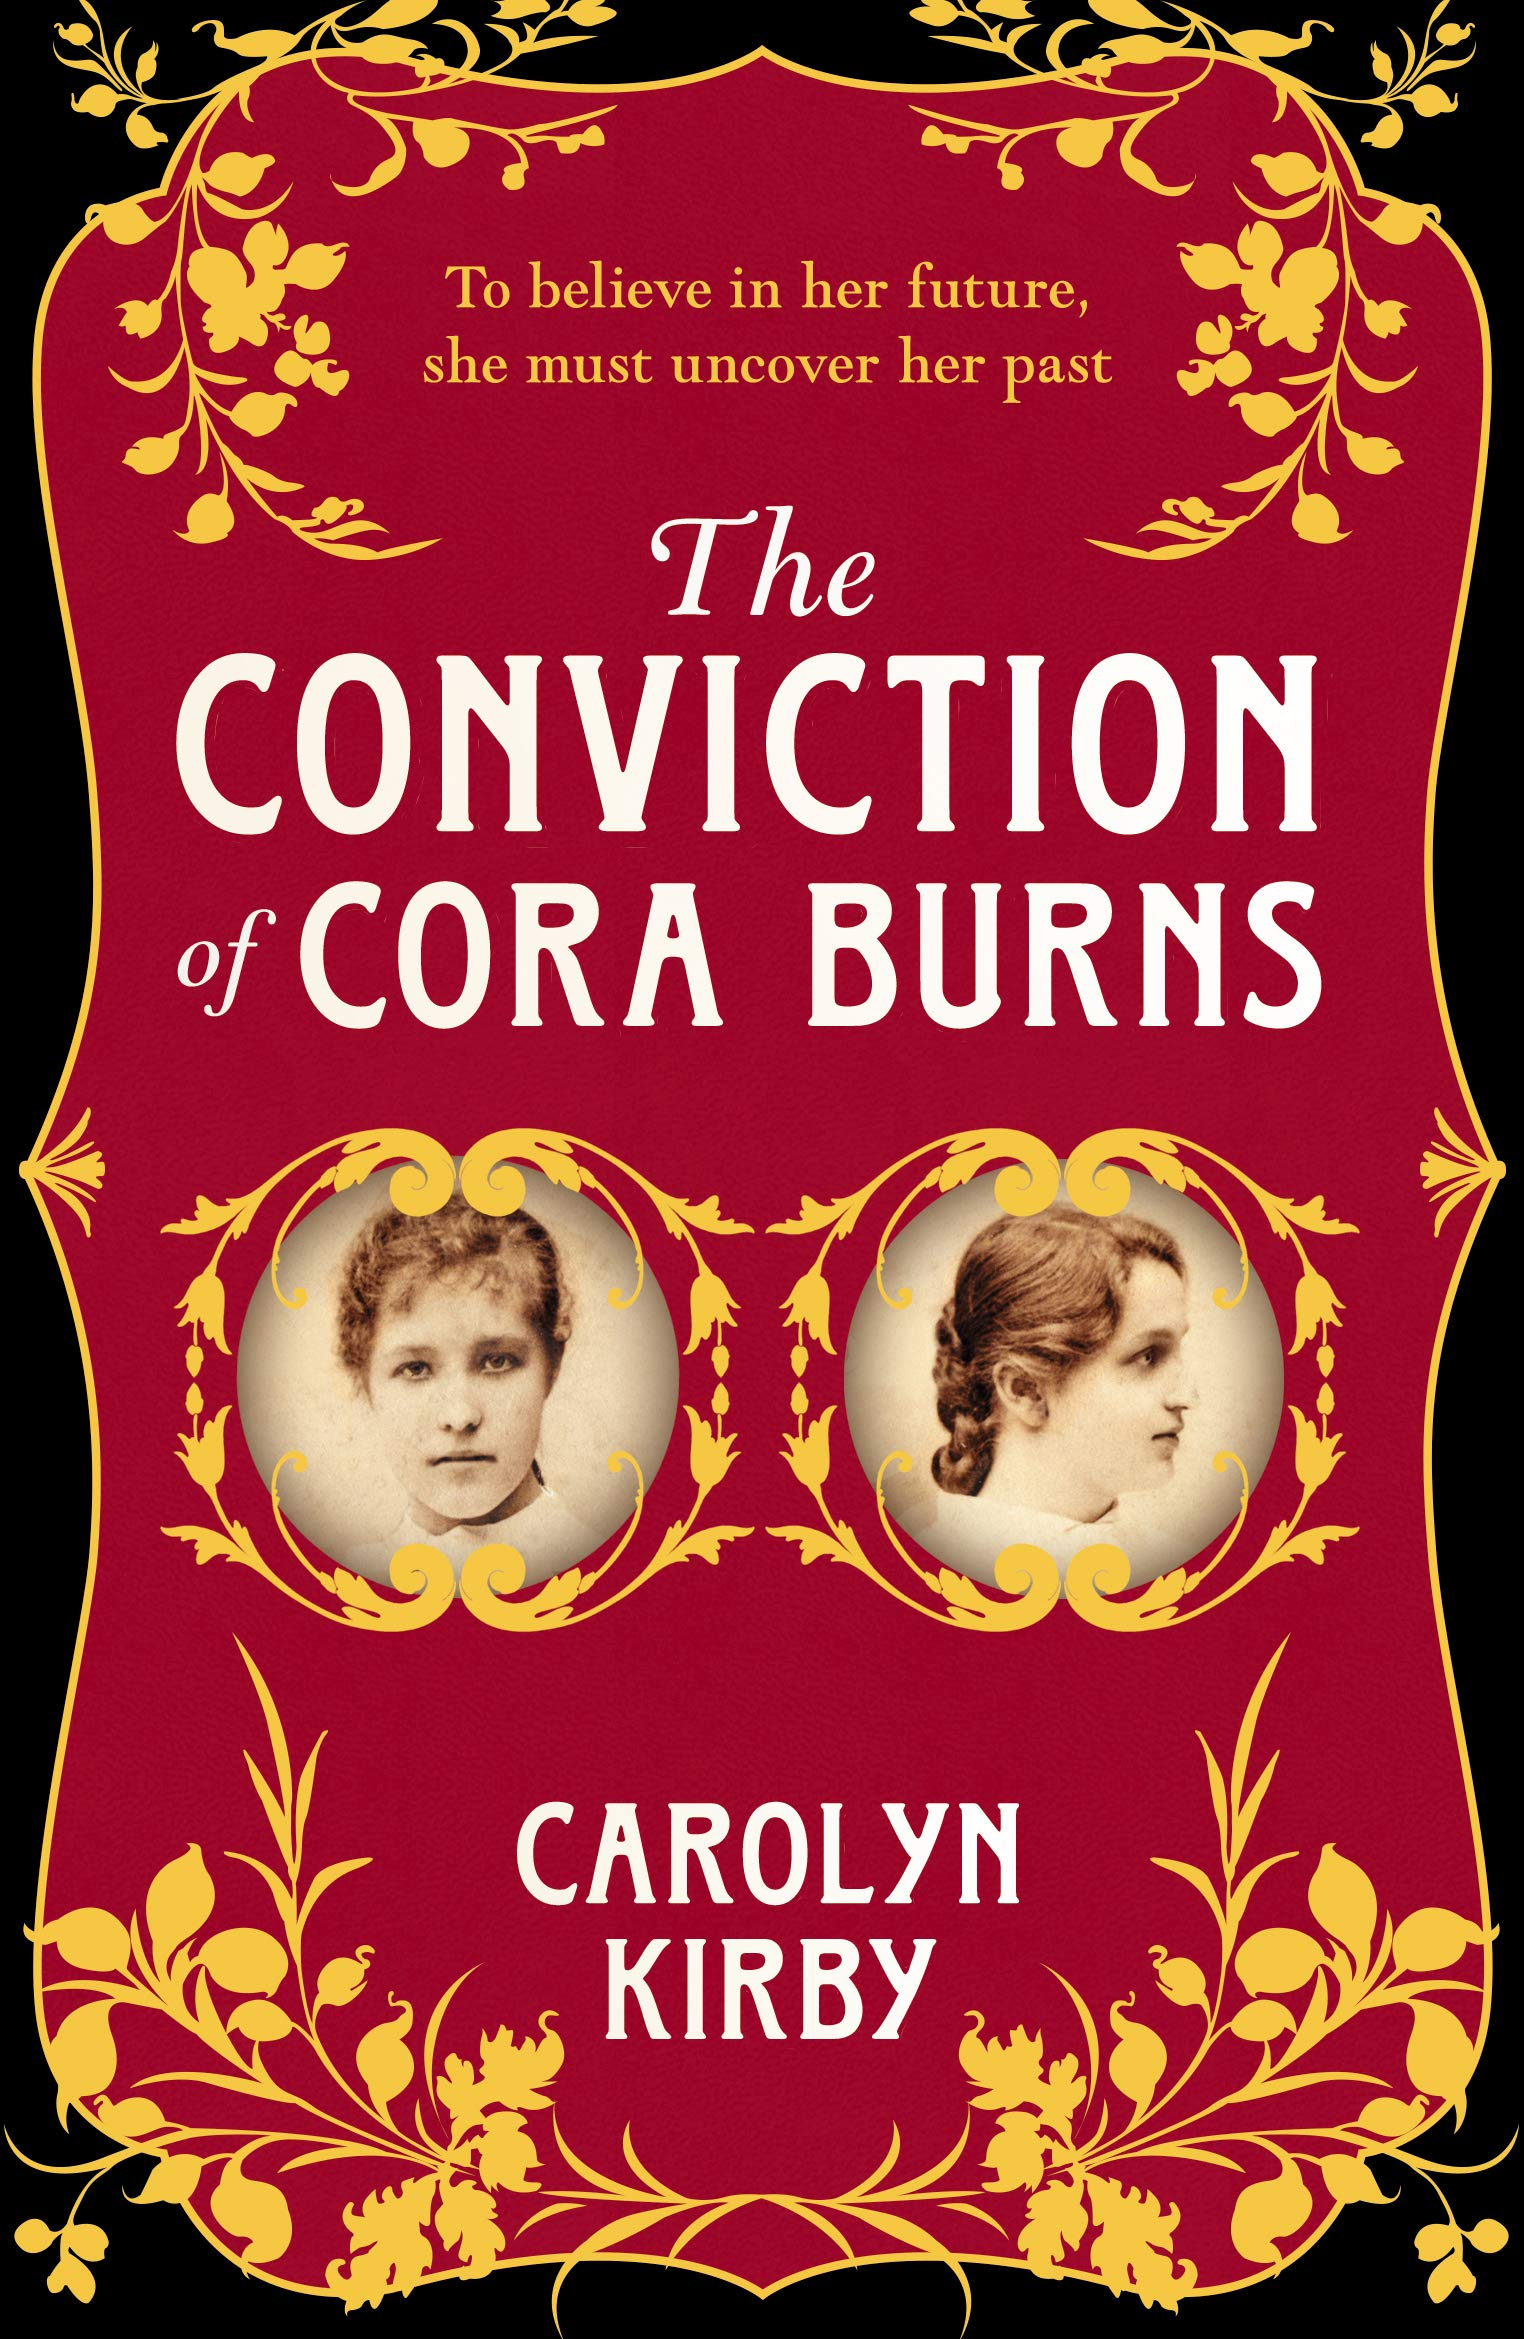 The Conviction of Cora Burns, Carolyn Kirby – Blue Pencil Agency Editorial Services